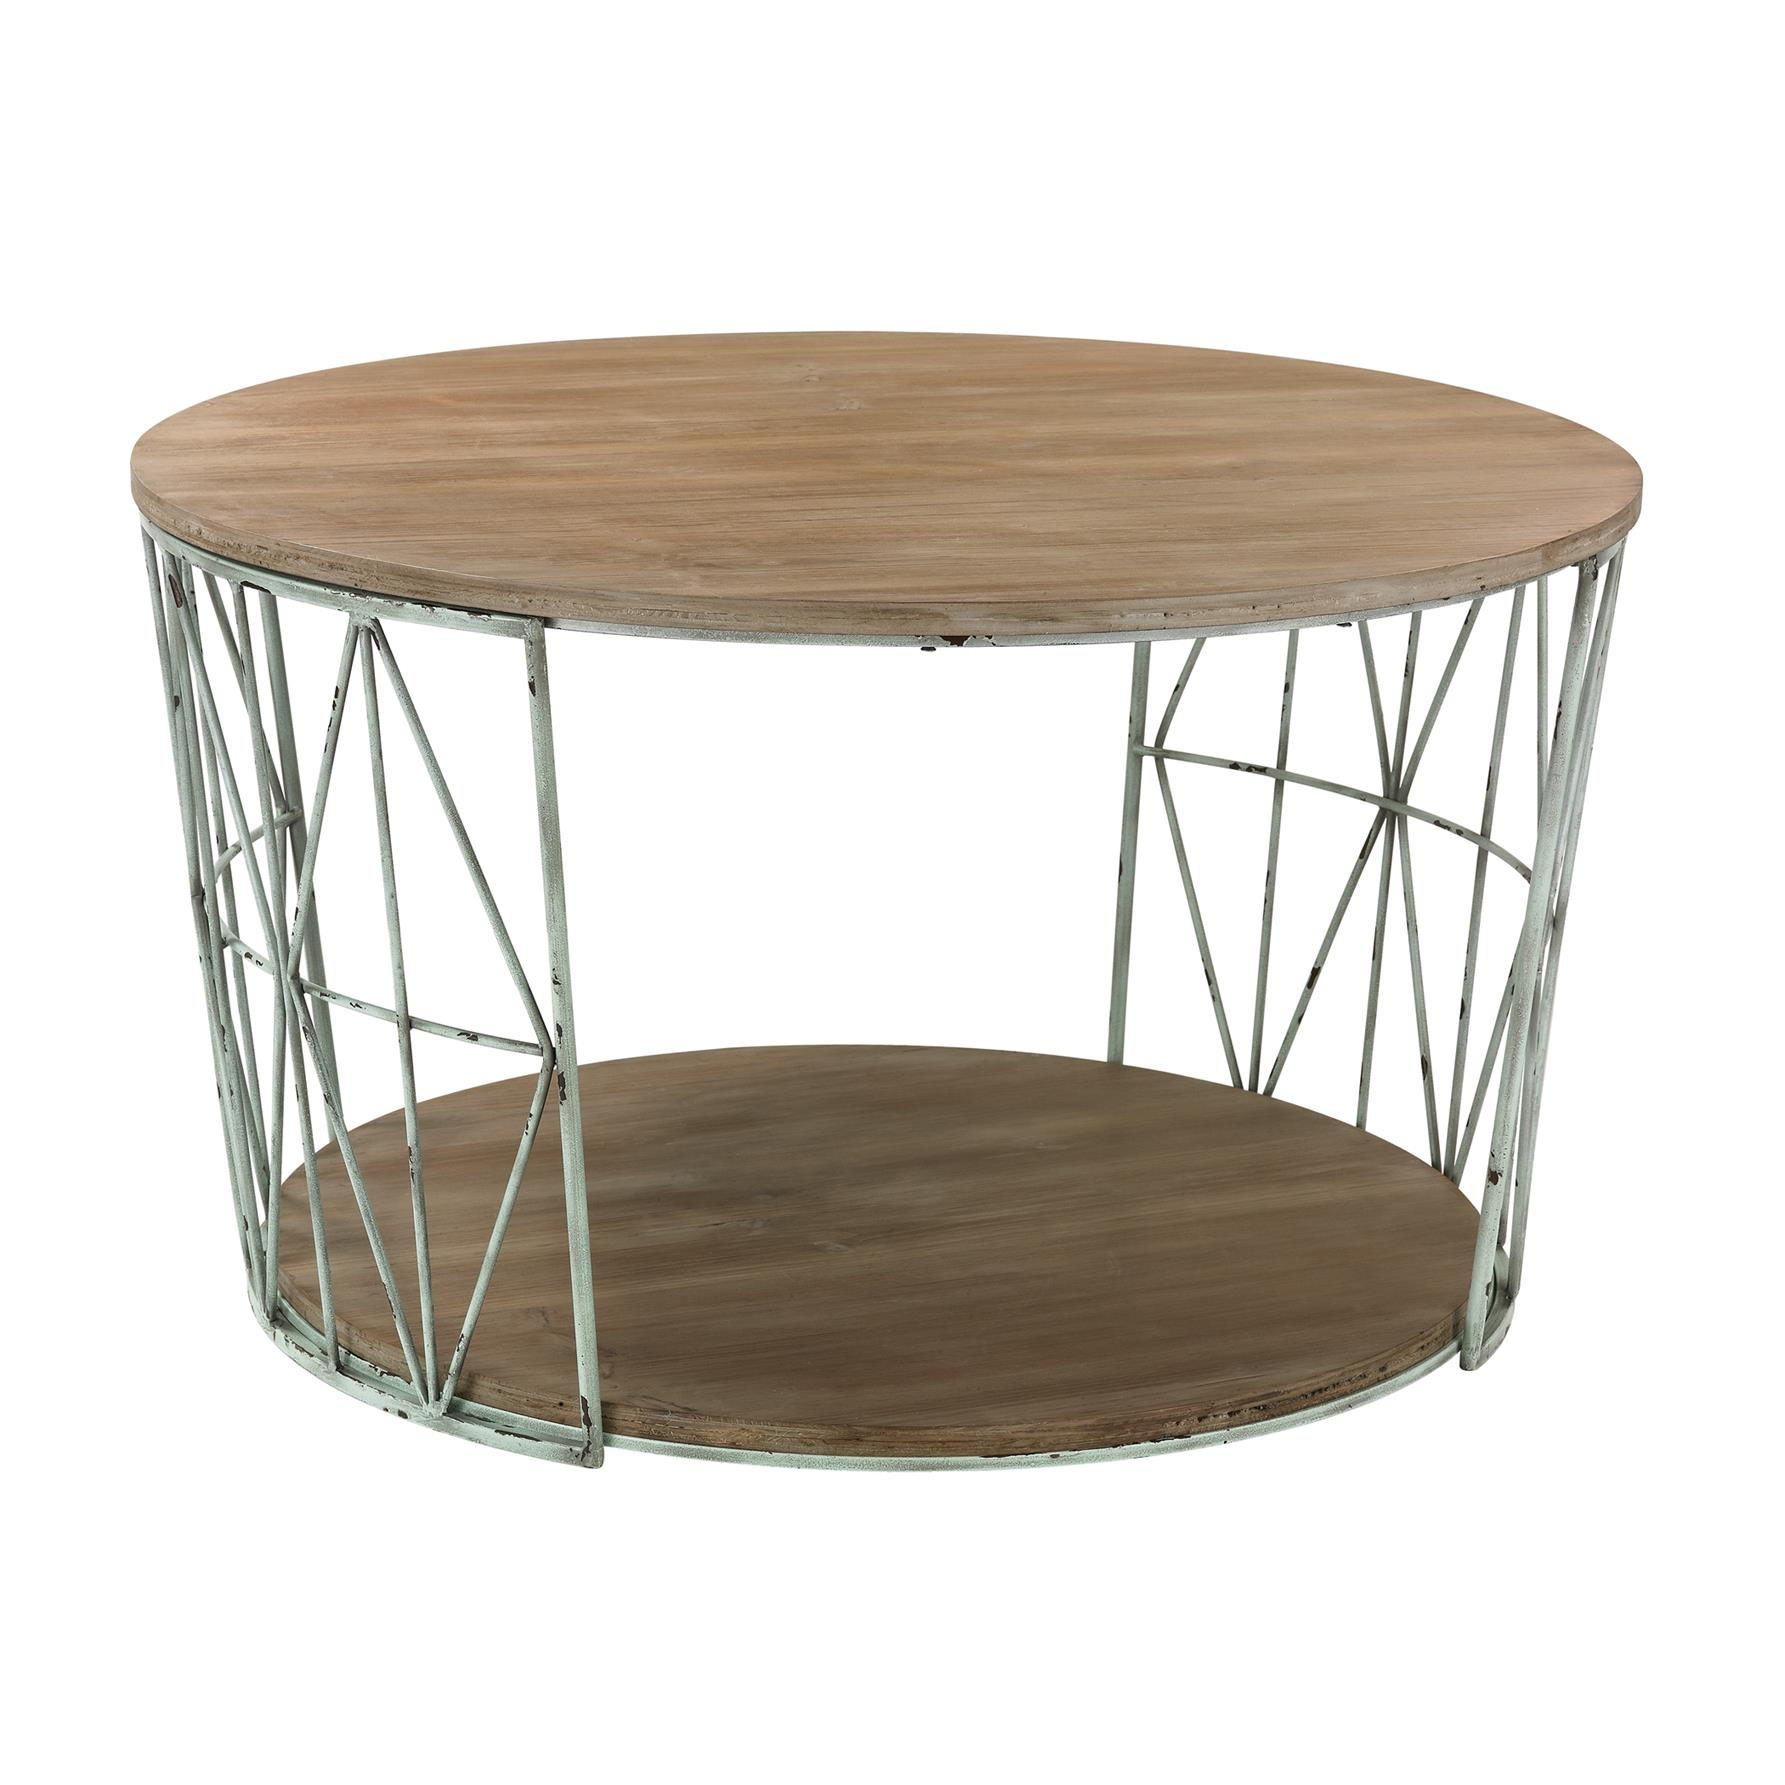 Sterling Industries  138-167  Tables  Furniture  Coffee Tables  ;Grey